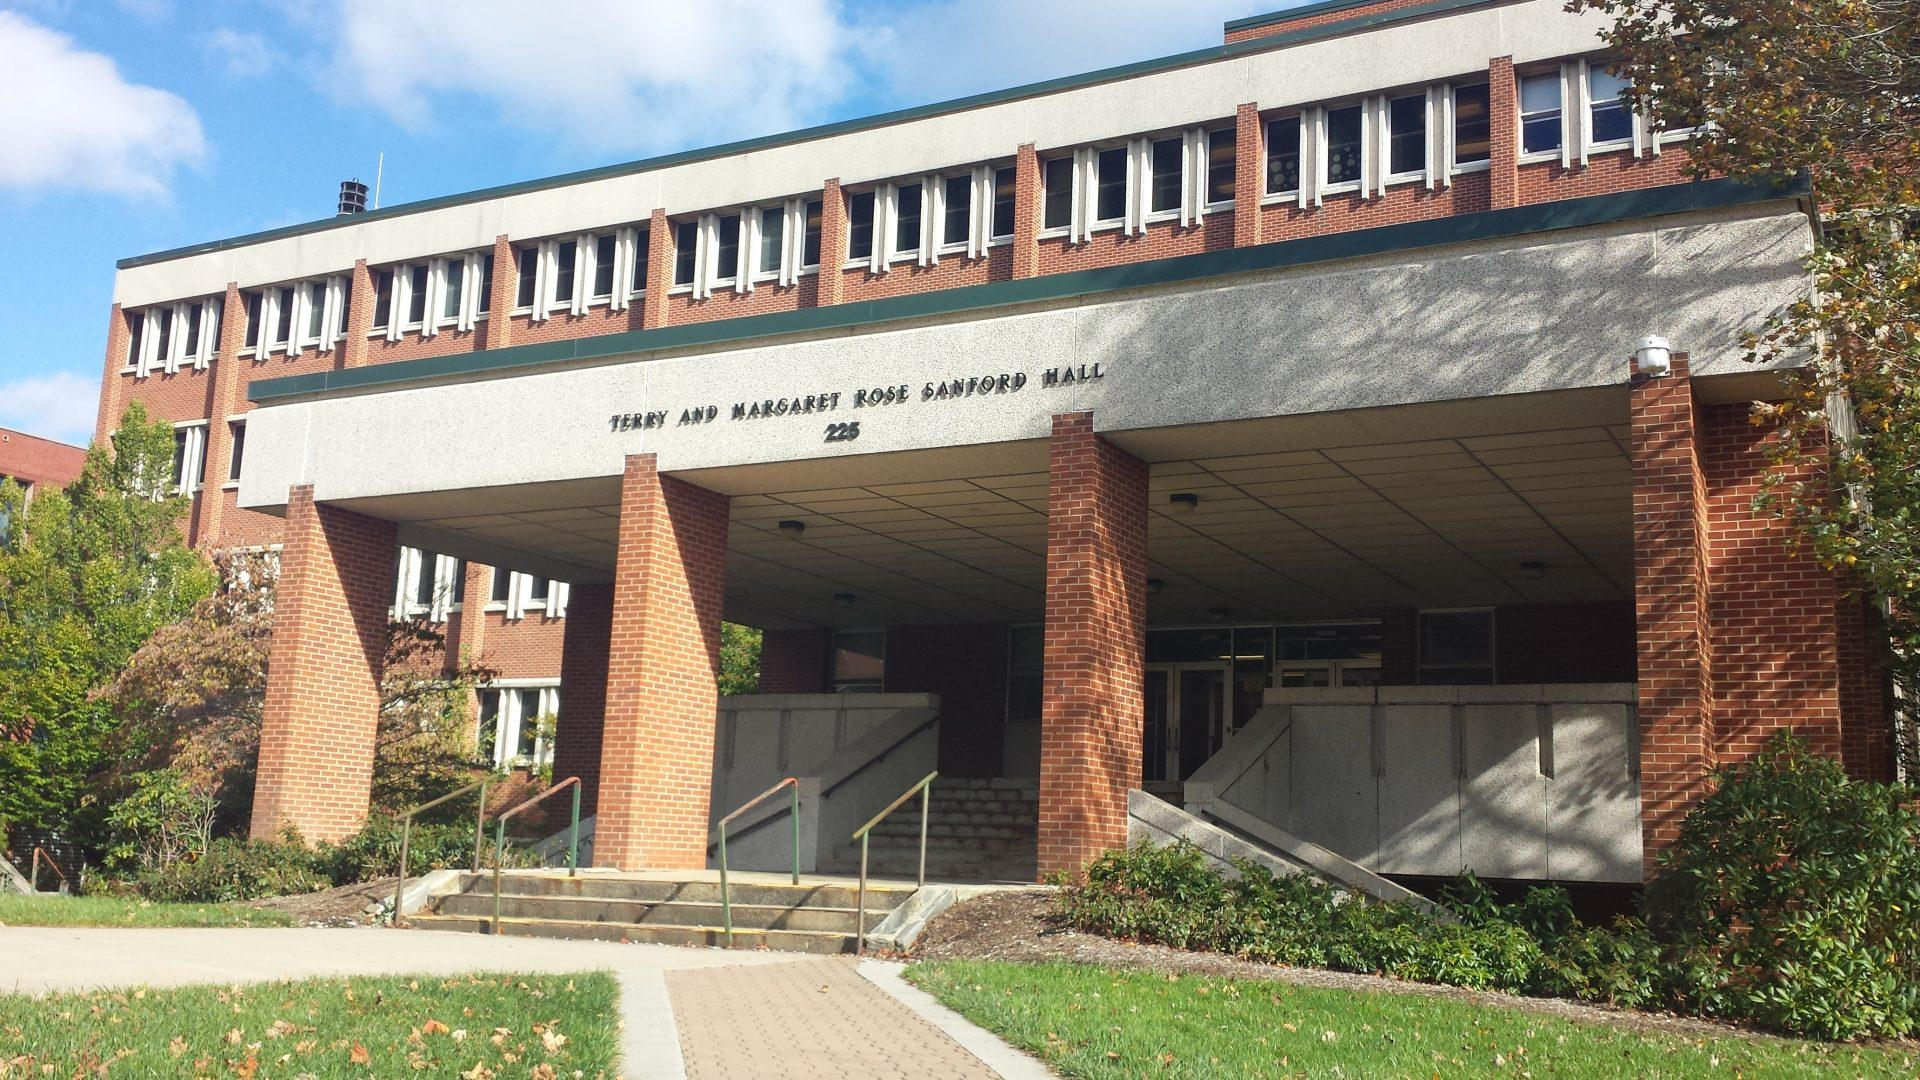 Renovating App: Solidifying the next steps for Sanford Hall